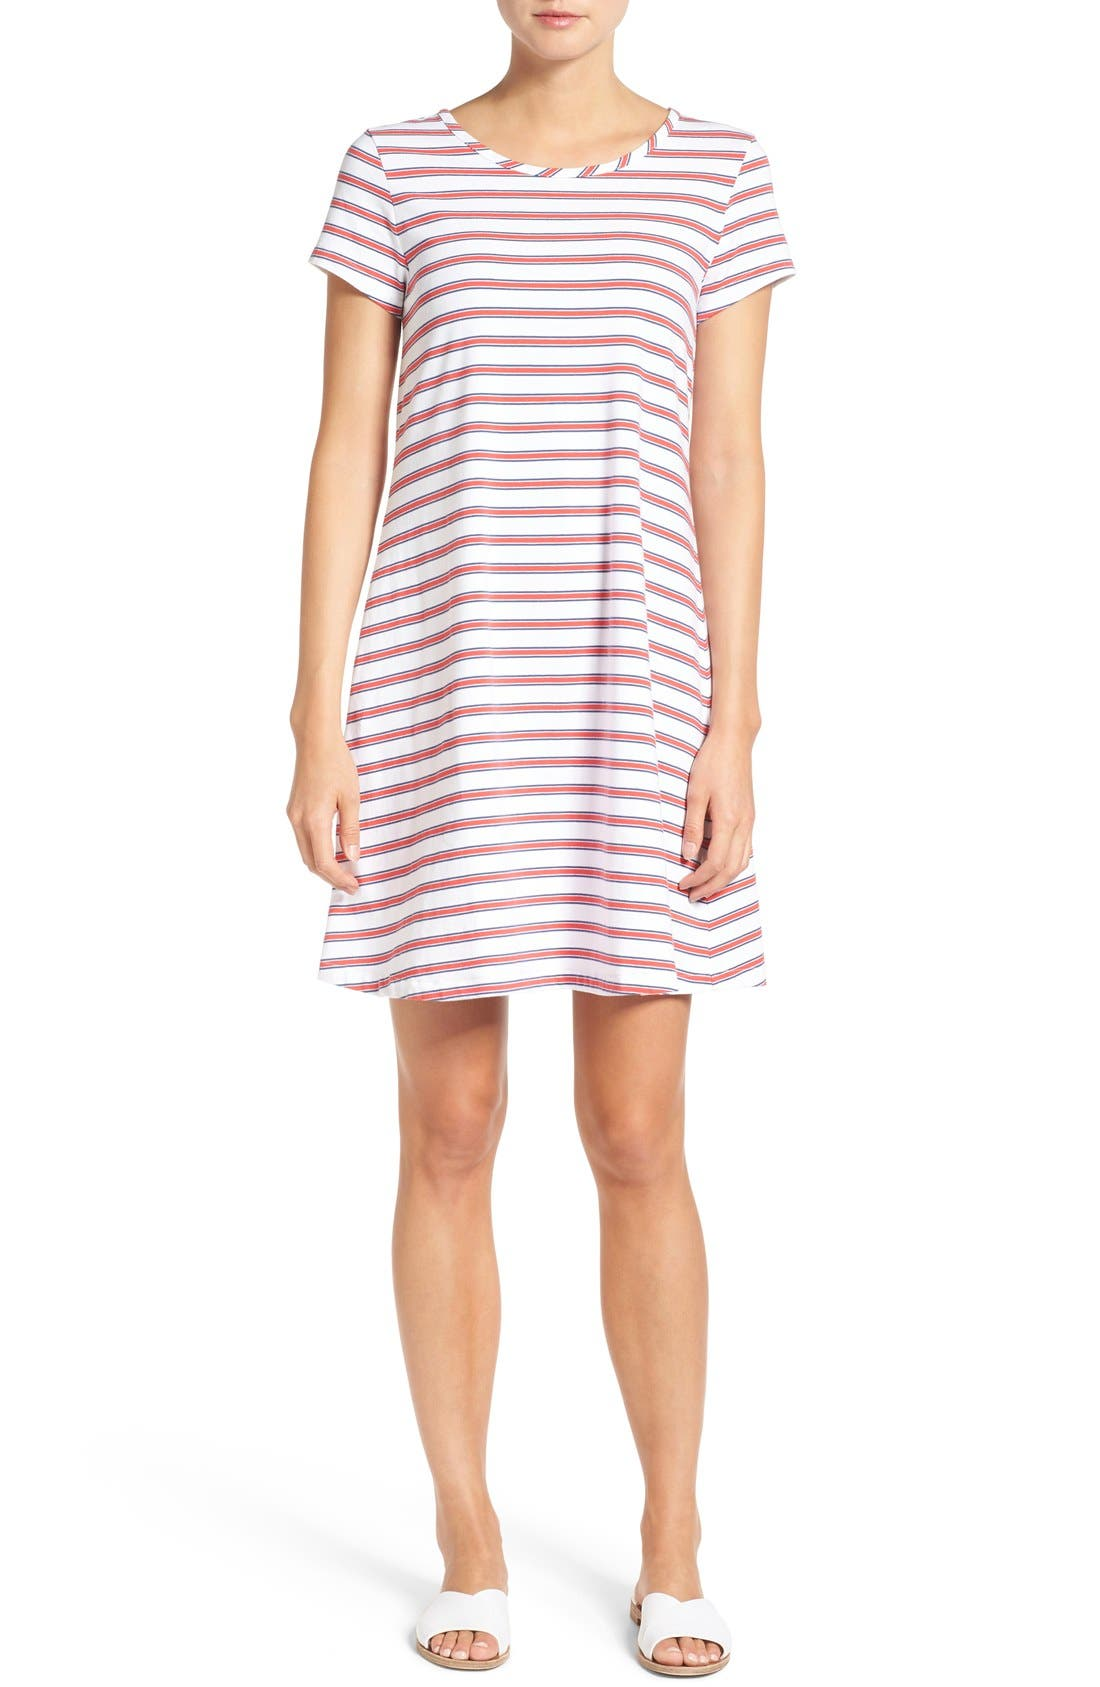 Main Image - Vineyard Vines Stripe Knit Stretch Cotton Shirtdress